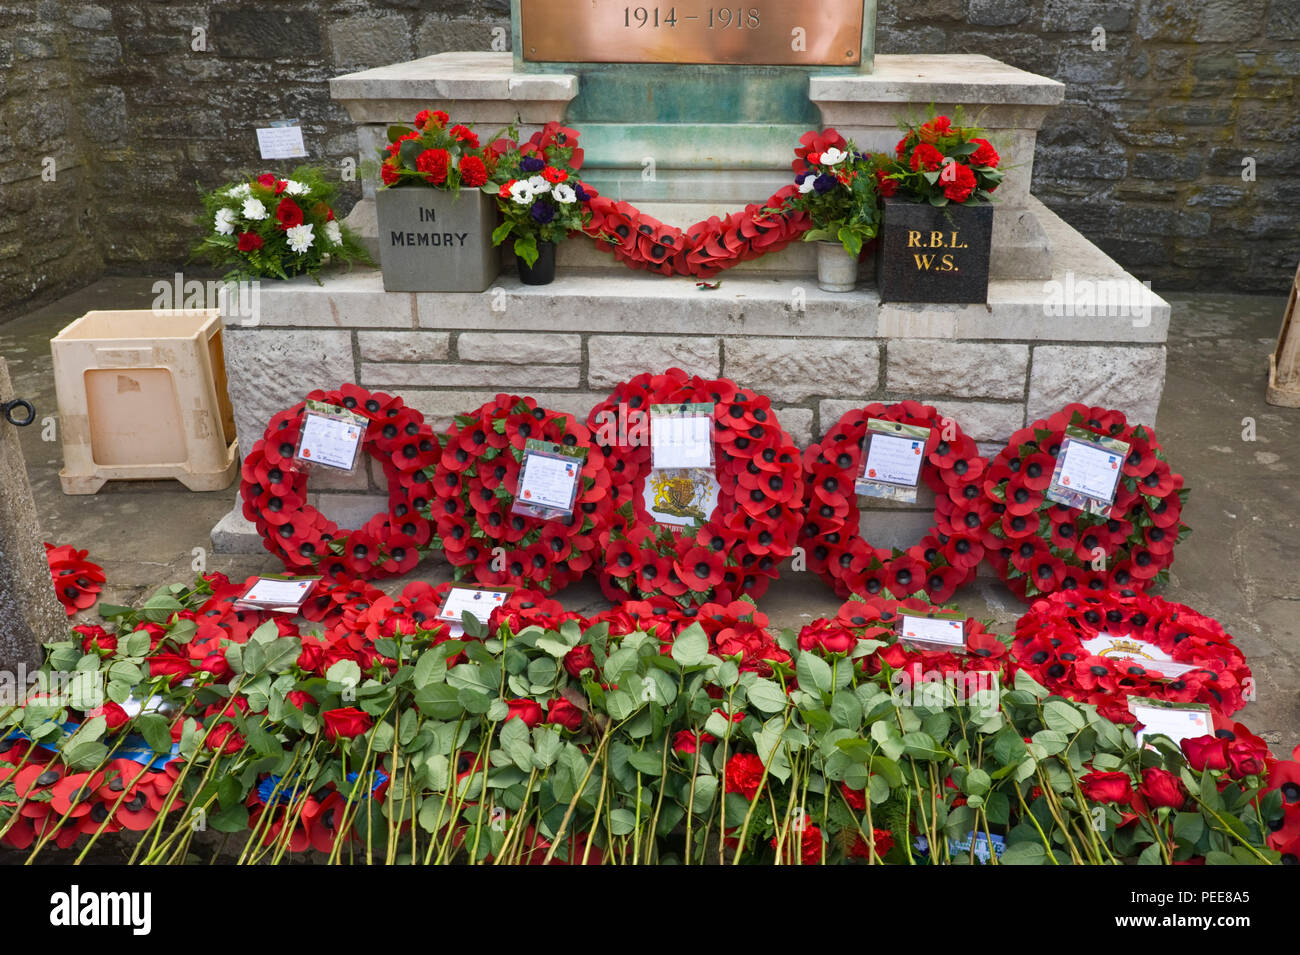 World War One Commemorative Event Poppy Wreaths Red Roses Laid